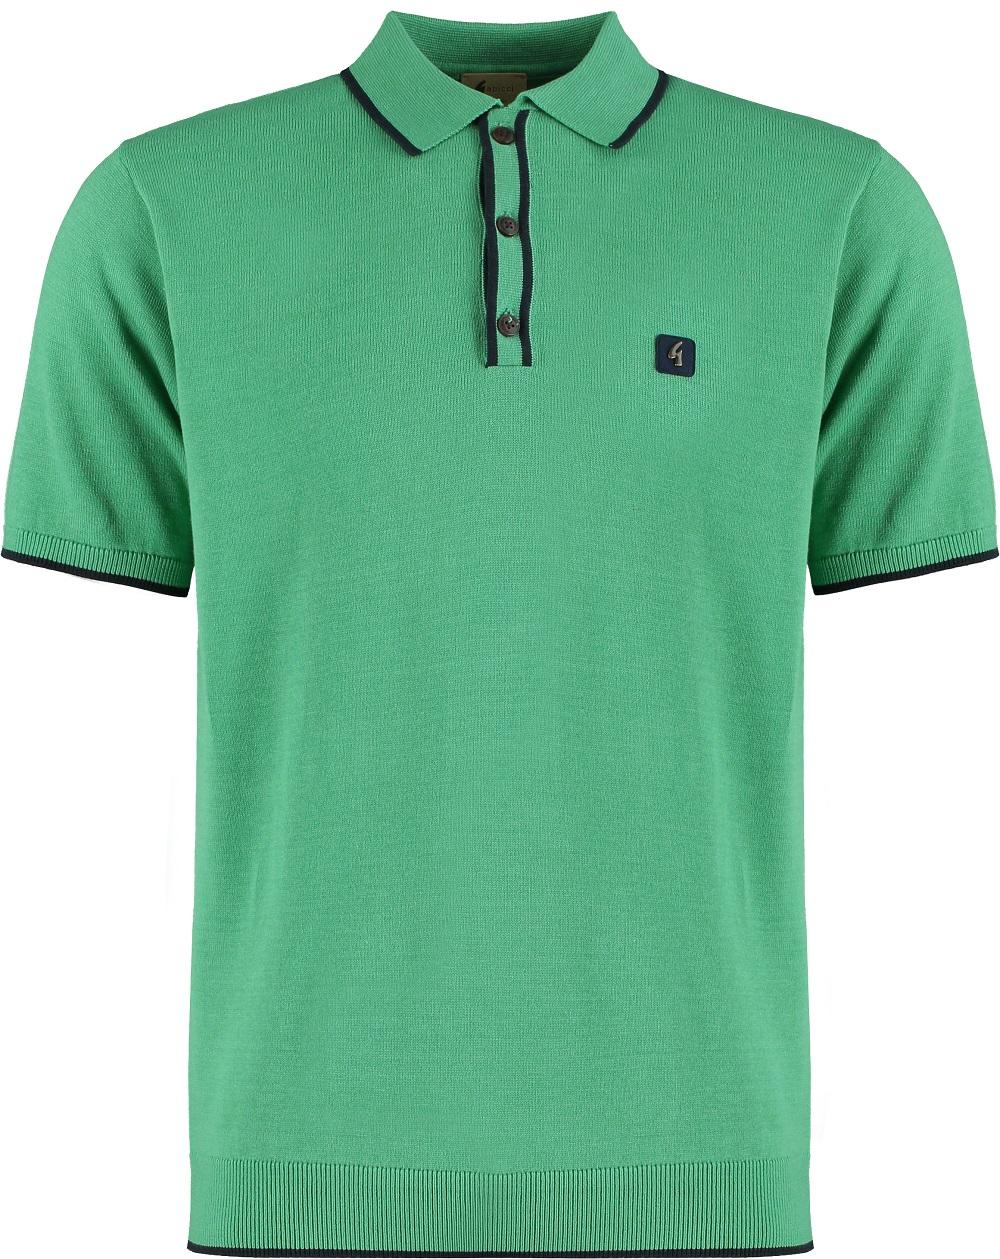 Gabicci Vintage 3 Button Tipping Knit Polo Green